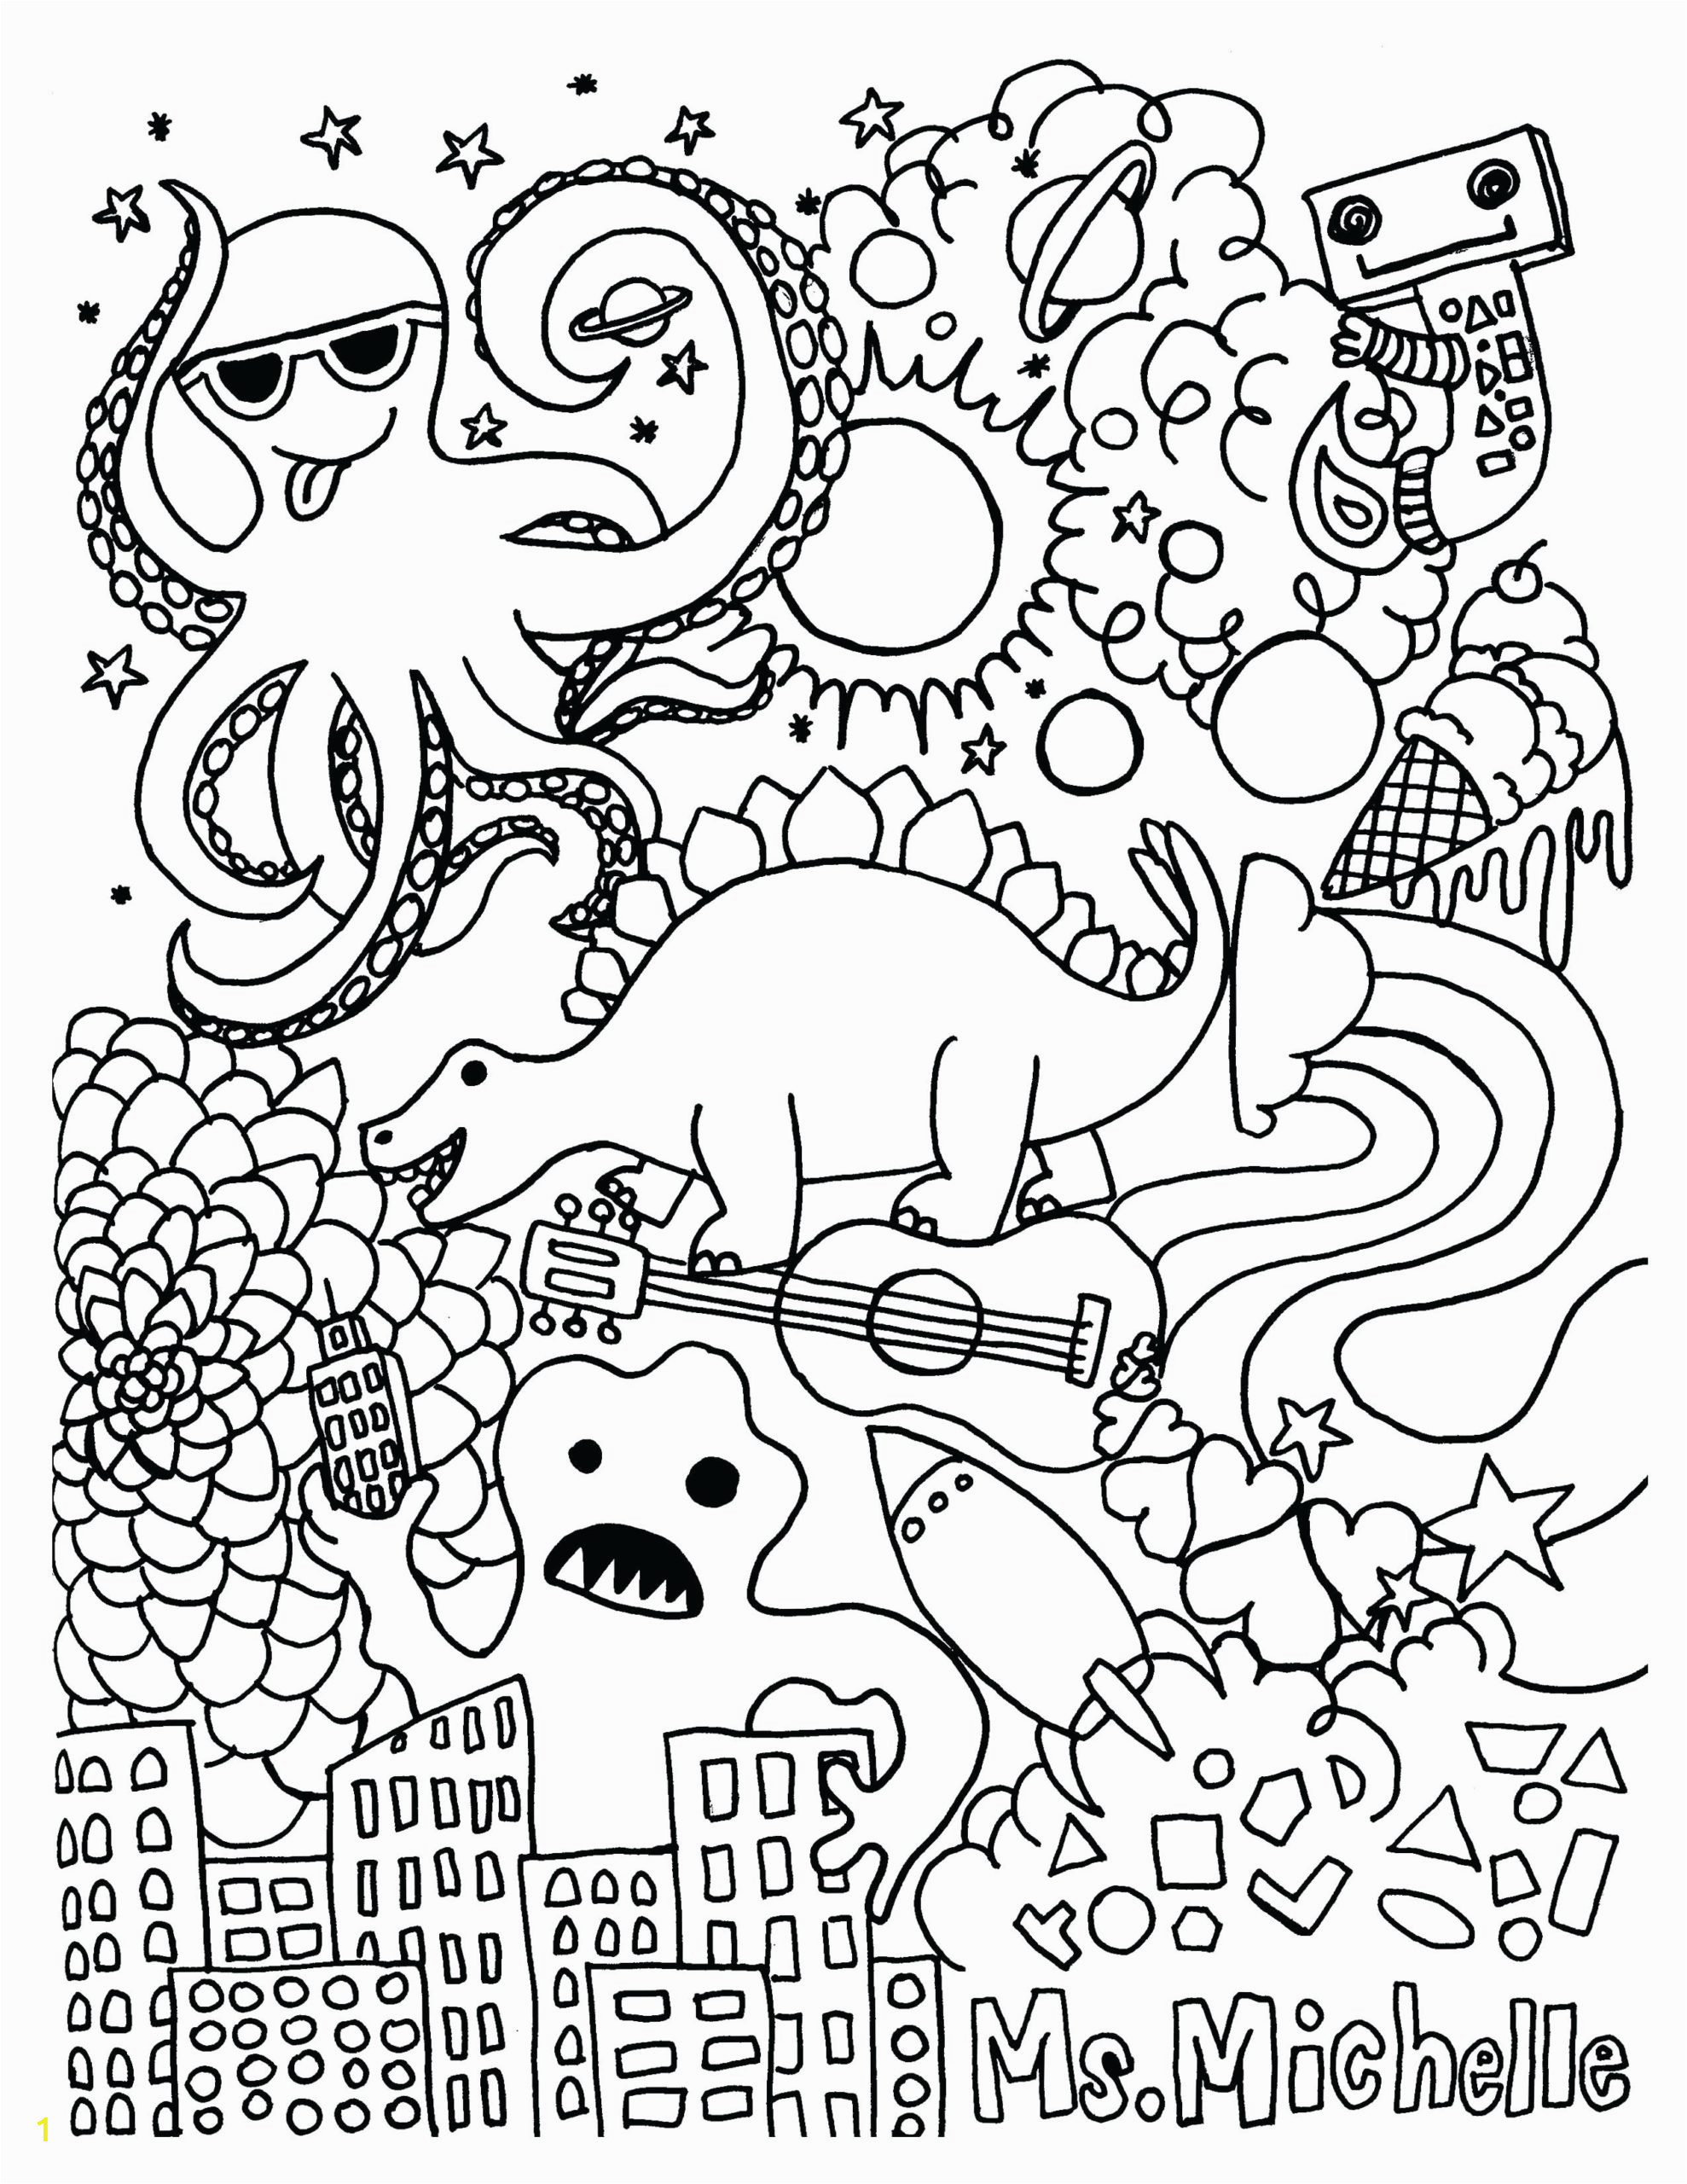 first aid kit coloring page band thermalprint co safety signs pages worksheets breastfed baby green poop pale yellow stool toddler black dark colored cancer pink in scaled